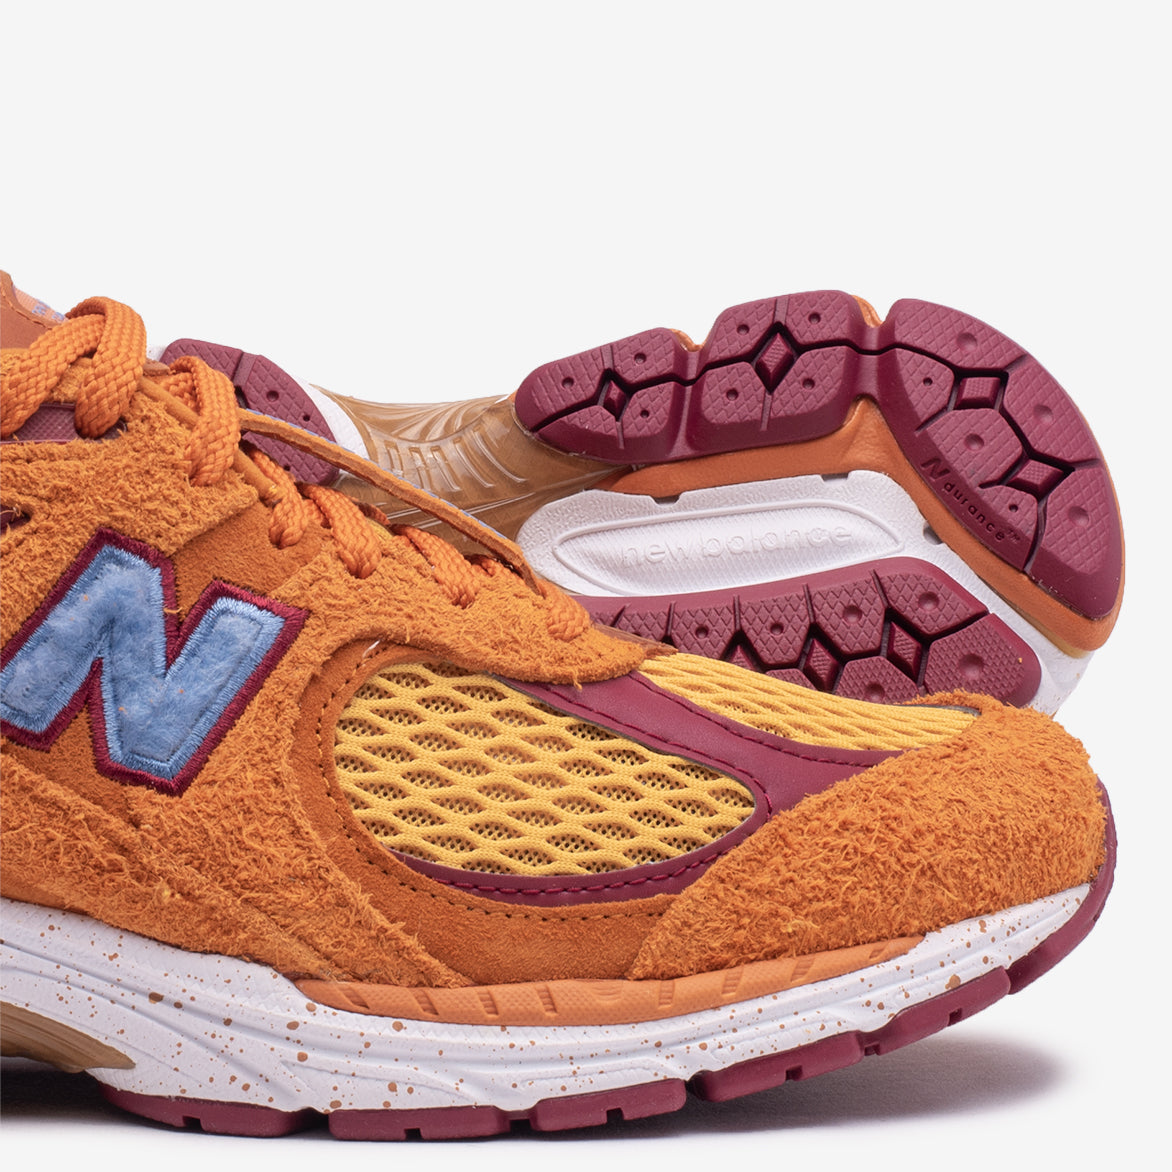 "SALEHE BEMBURY X NEW BALANCE 2002R ""PEACE BE THE JOURNEY"""